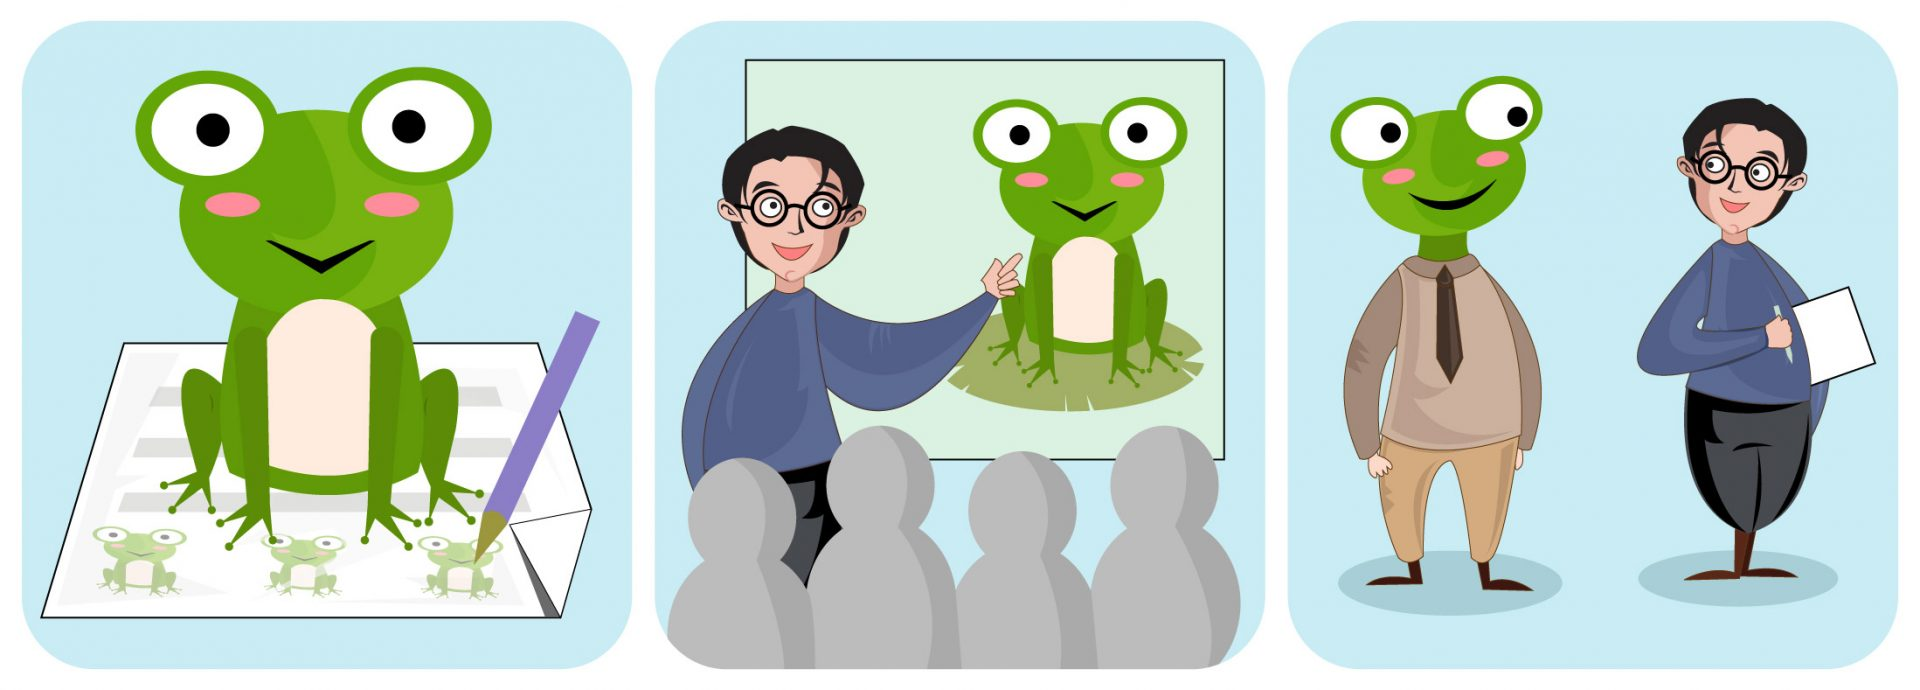 "A cartoon depiction of the time management technique ""eating the frog""."